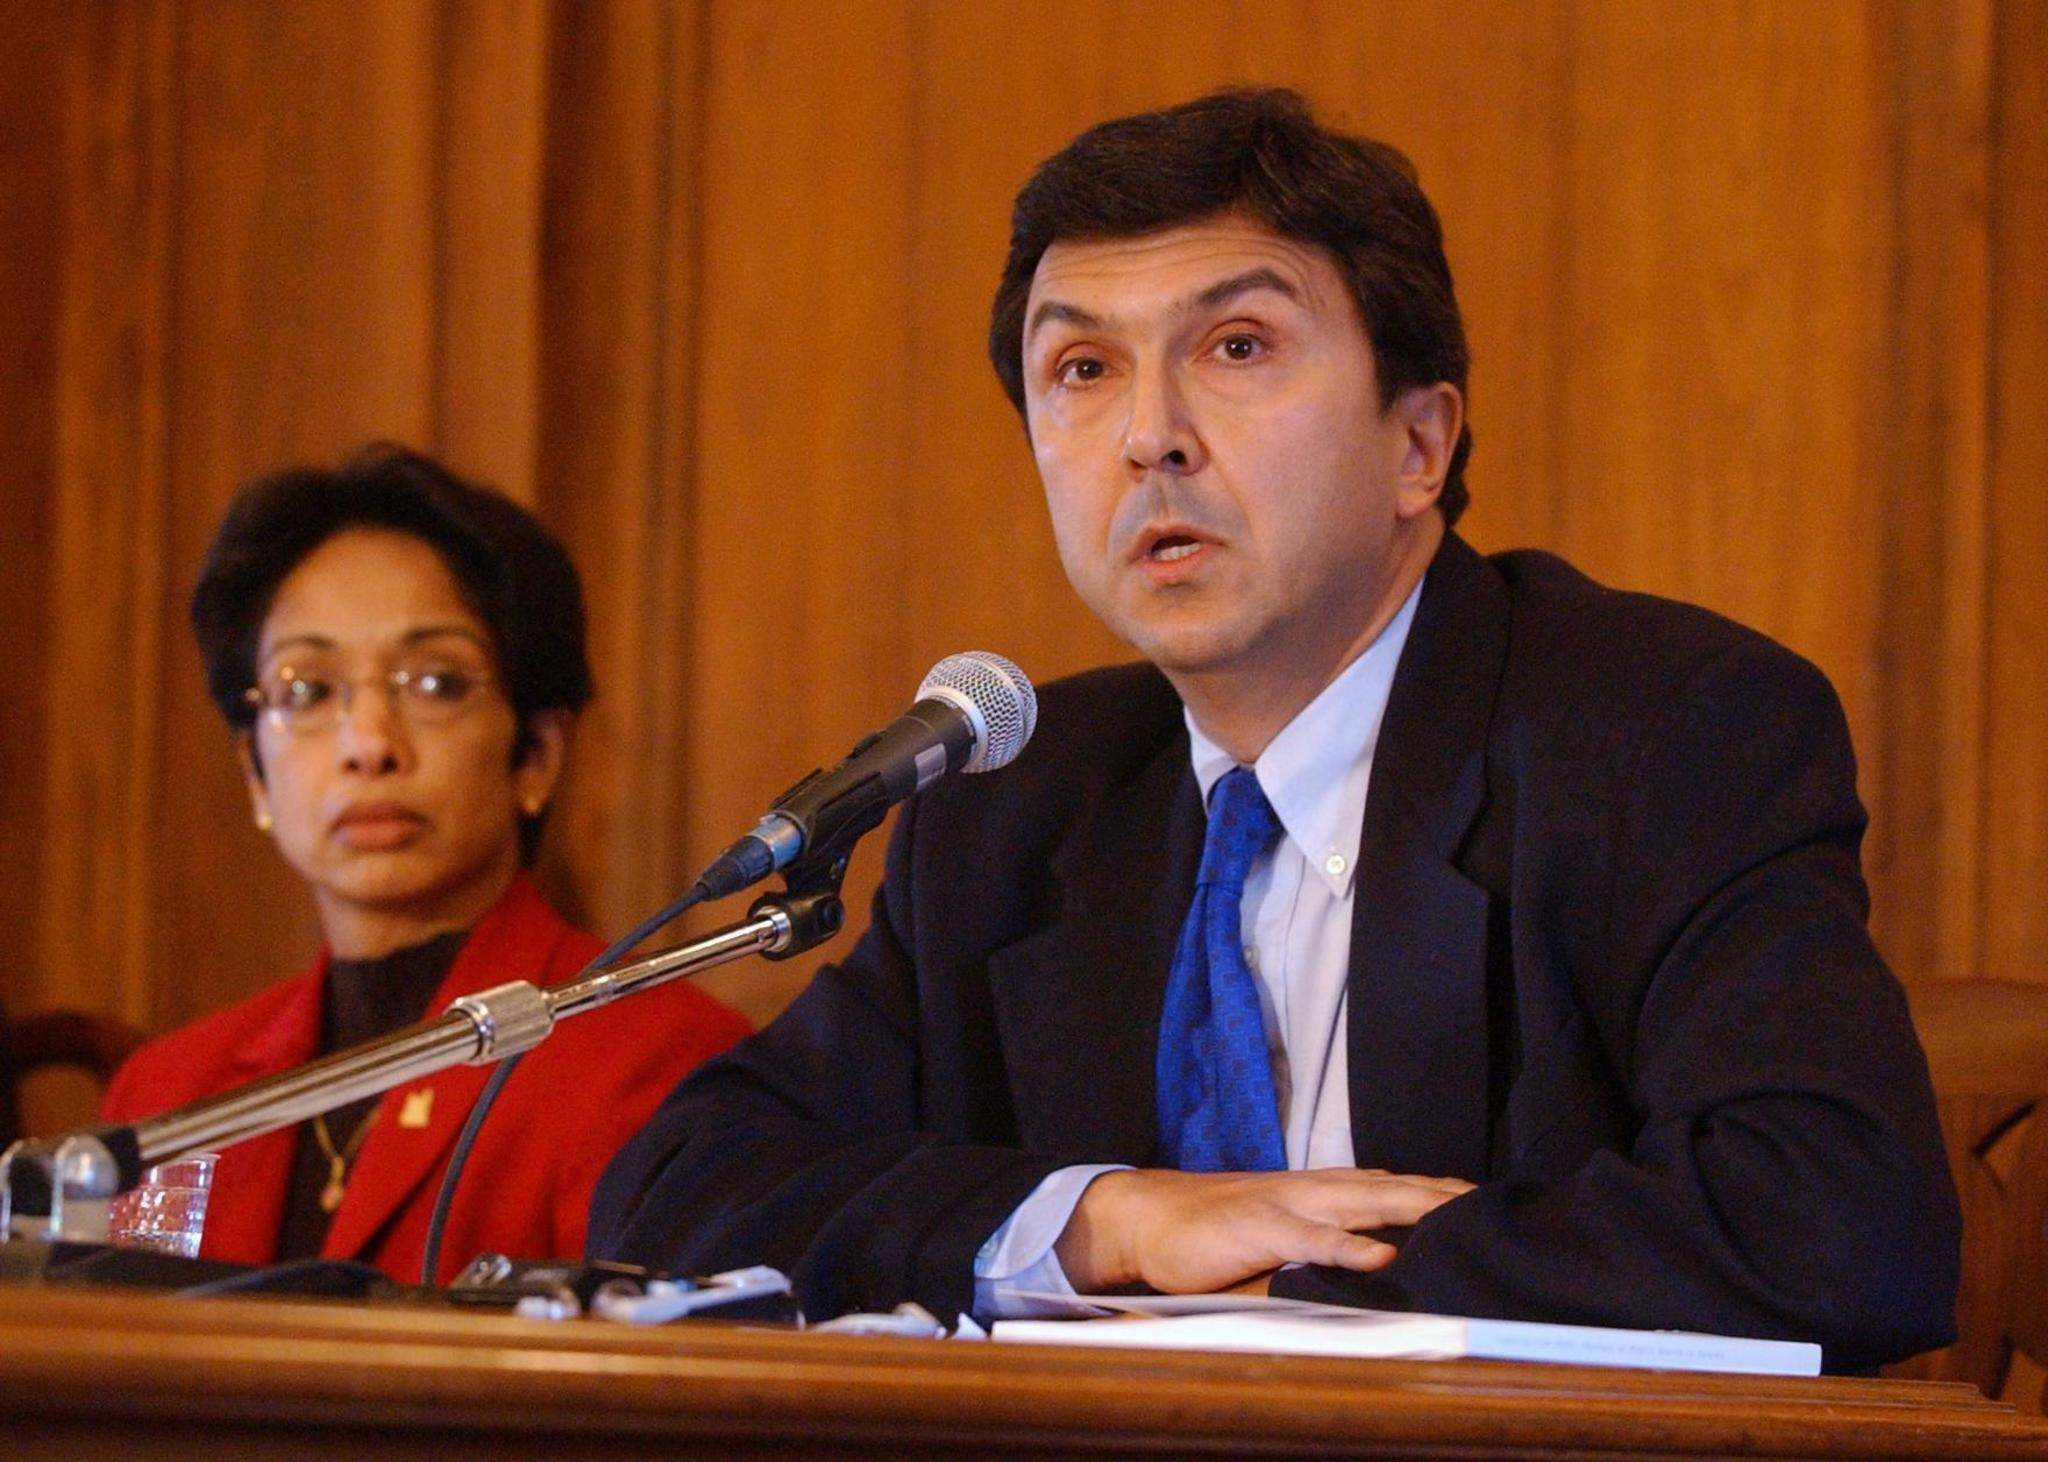 Dr. David Naylor addresses a news conference in Toronto in October 2003.